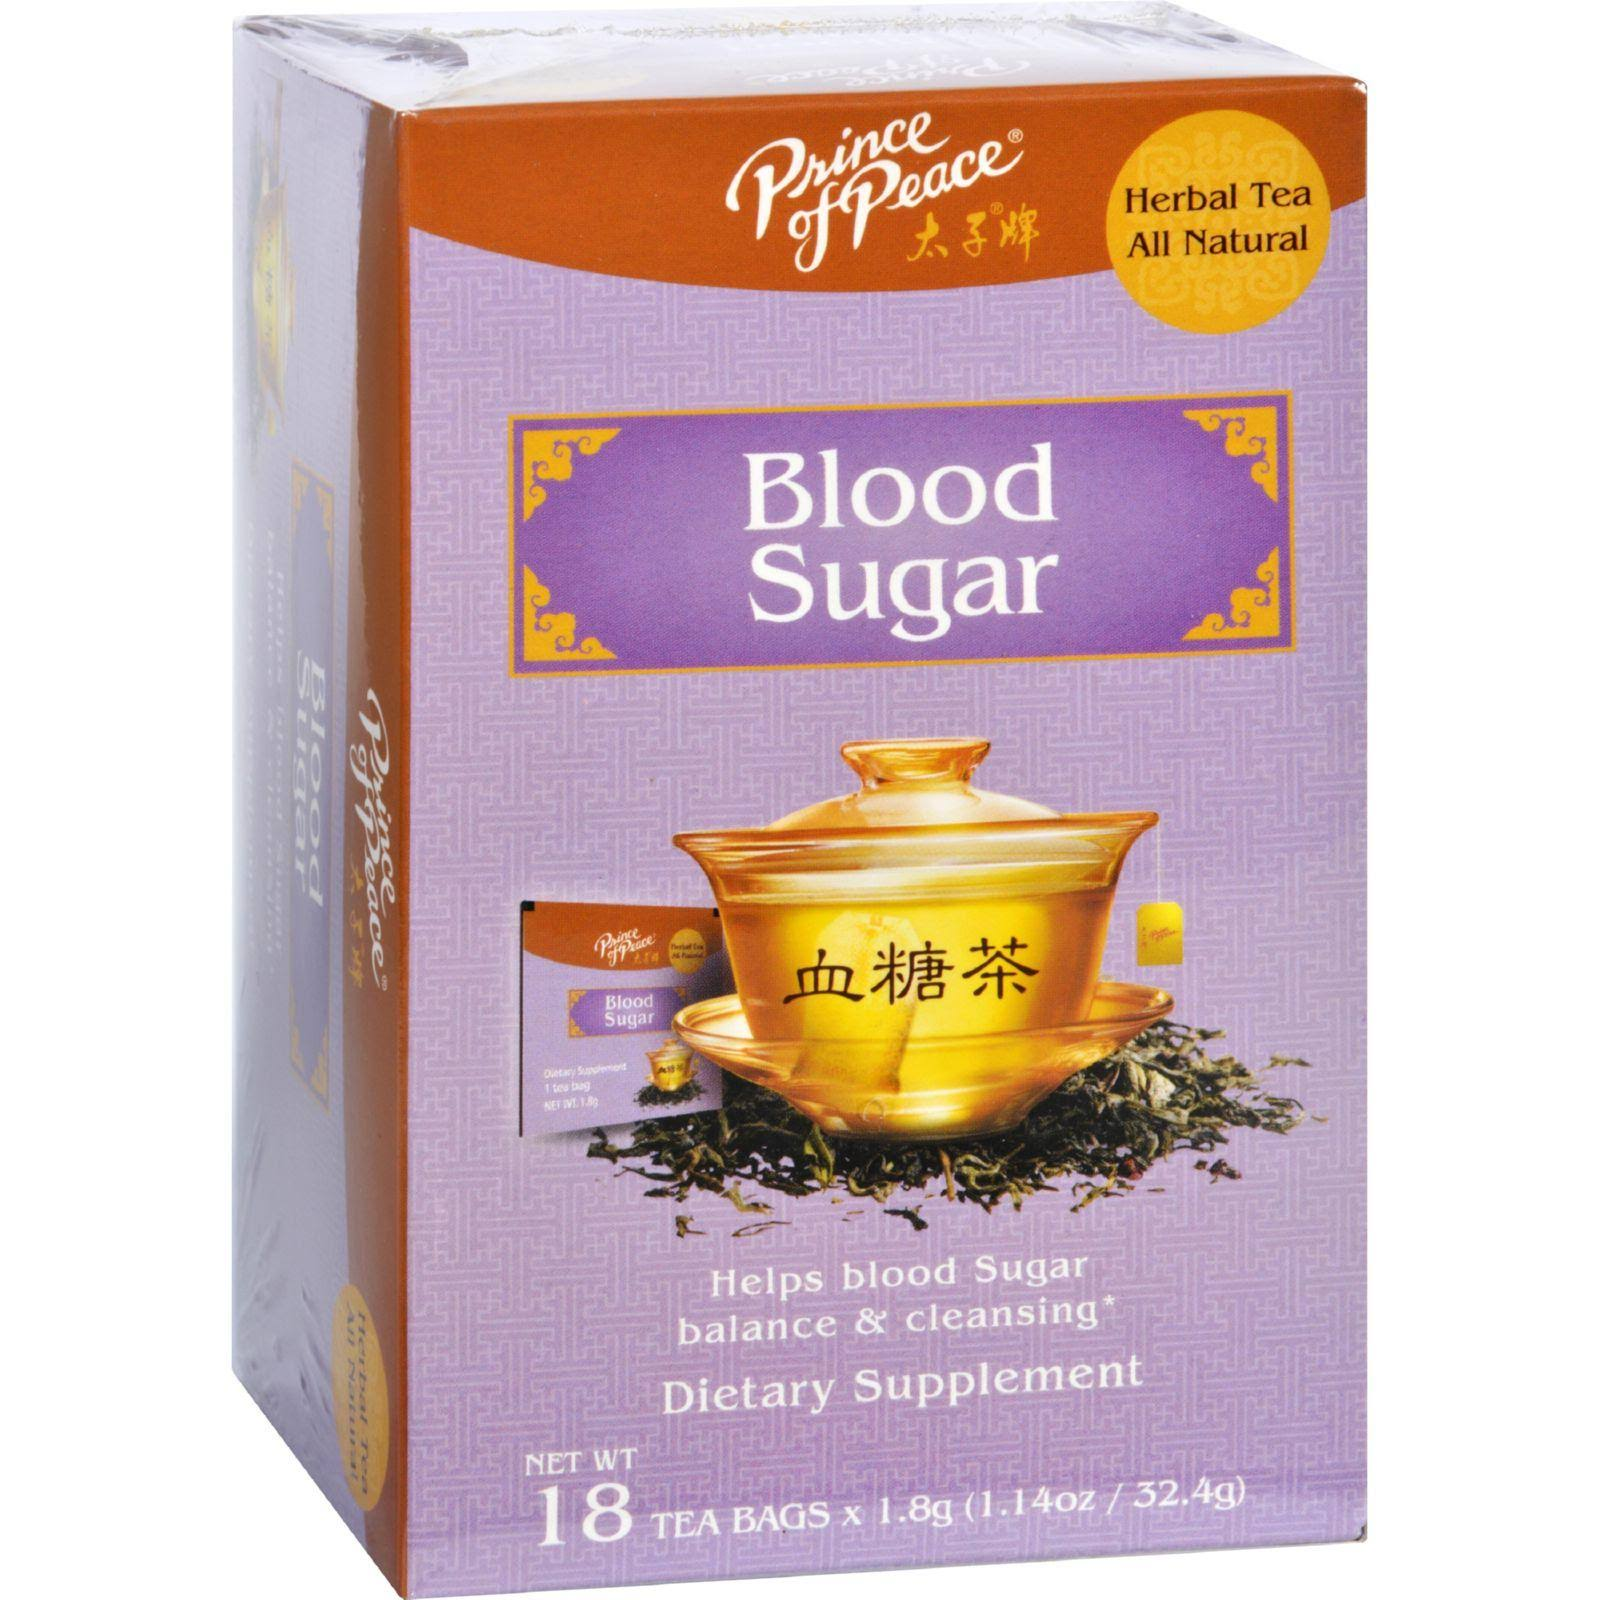 Prince of Peace Blood Sugar Herbal Tea - 18 Bags